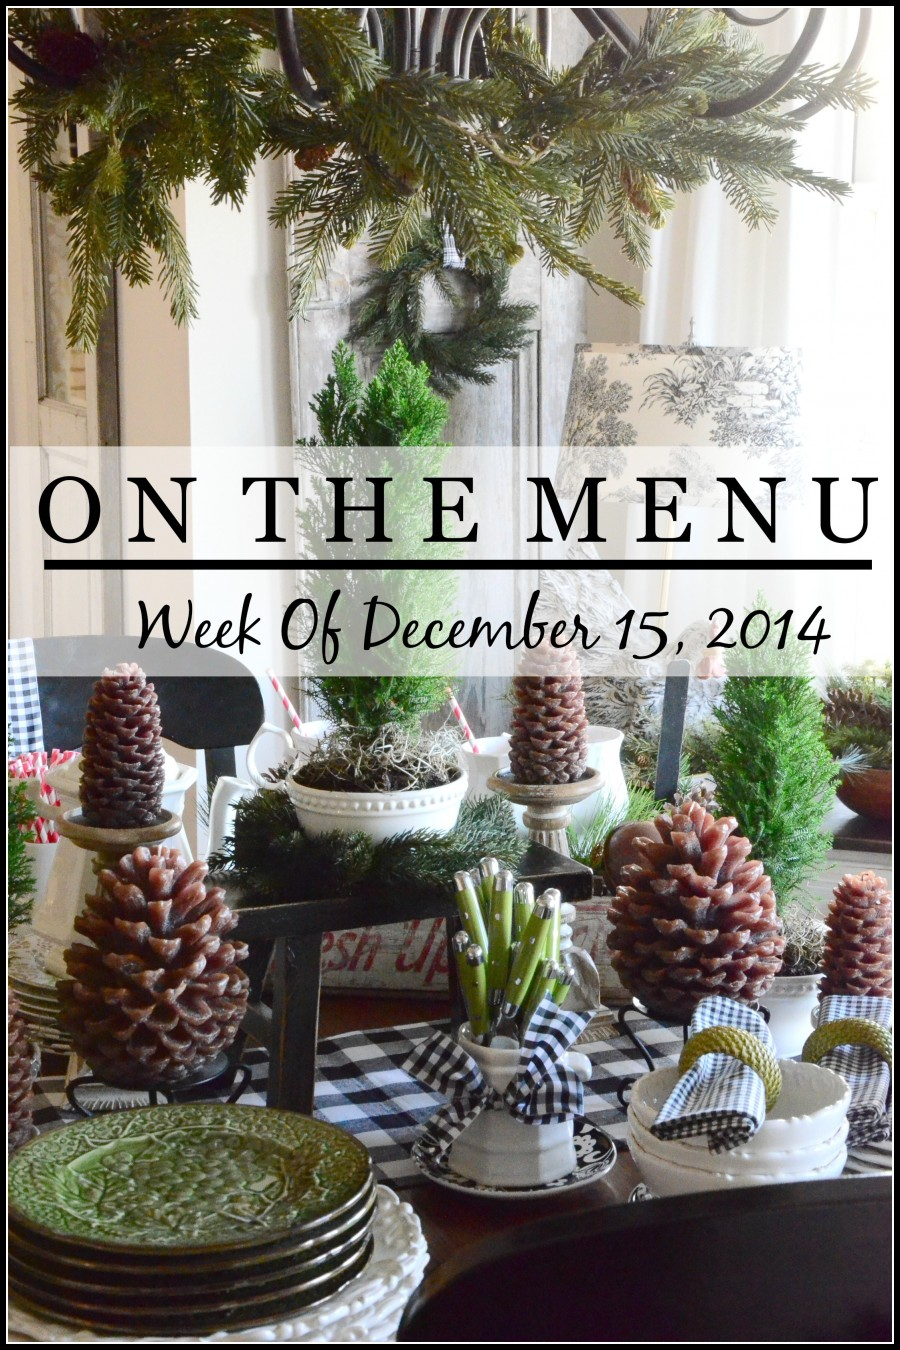 ON THE MENU WEEK OF DECEMBER 15, 2014